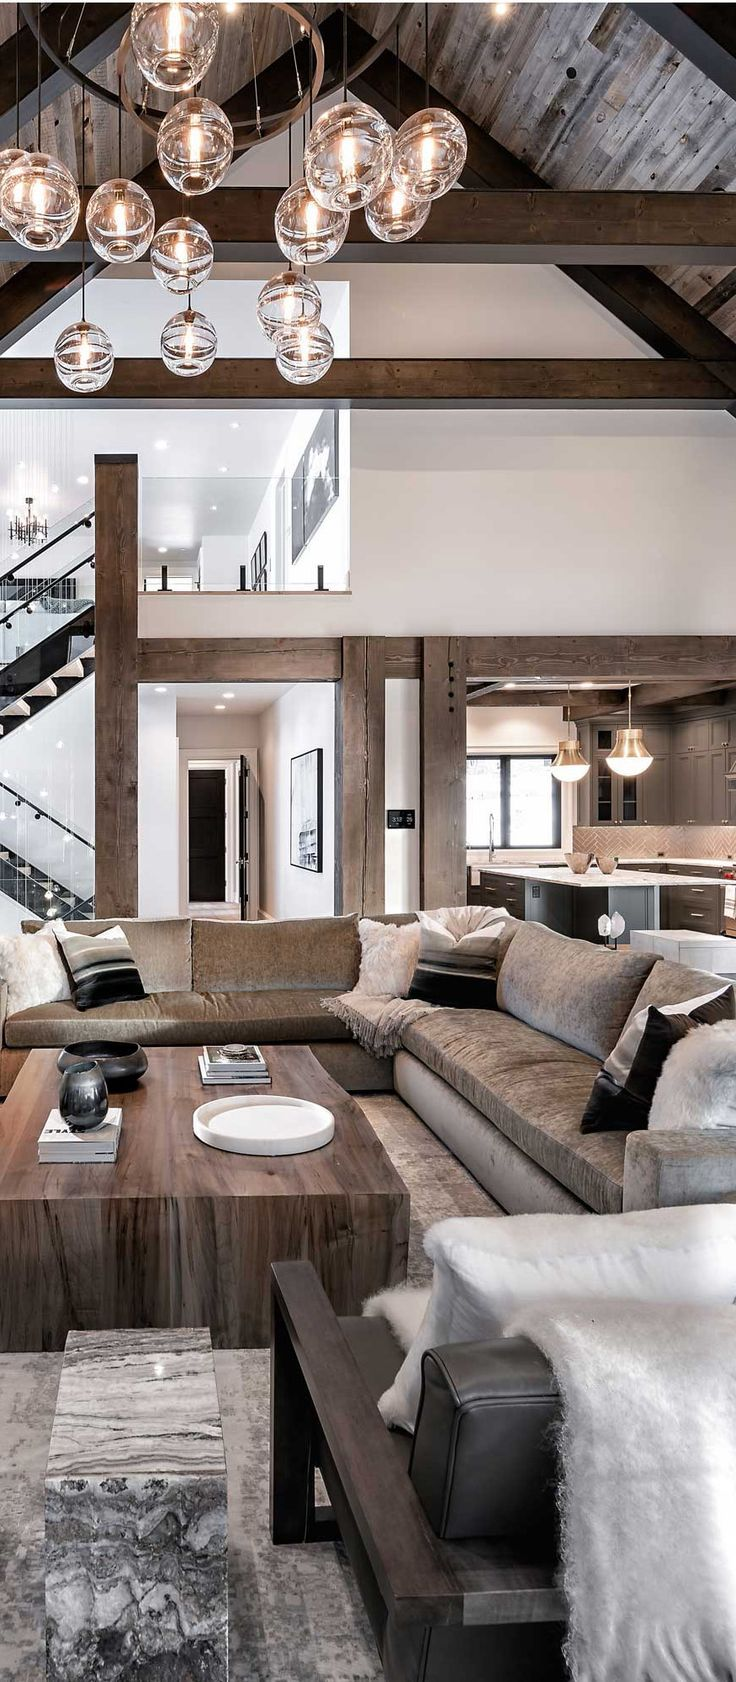 45 Modern Rustic Living Room Ideas For 2021 Tips Photo Gallery Modern Rustic Living Room Luxury Living Room Rustic Chic Living Room Living room rustic decor